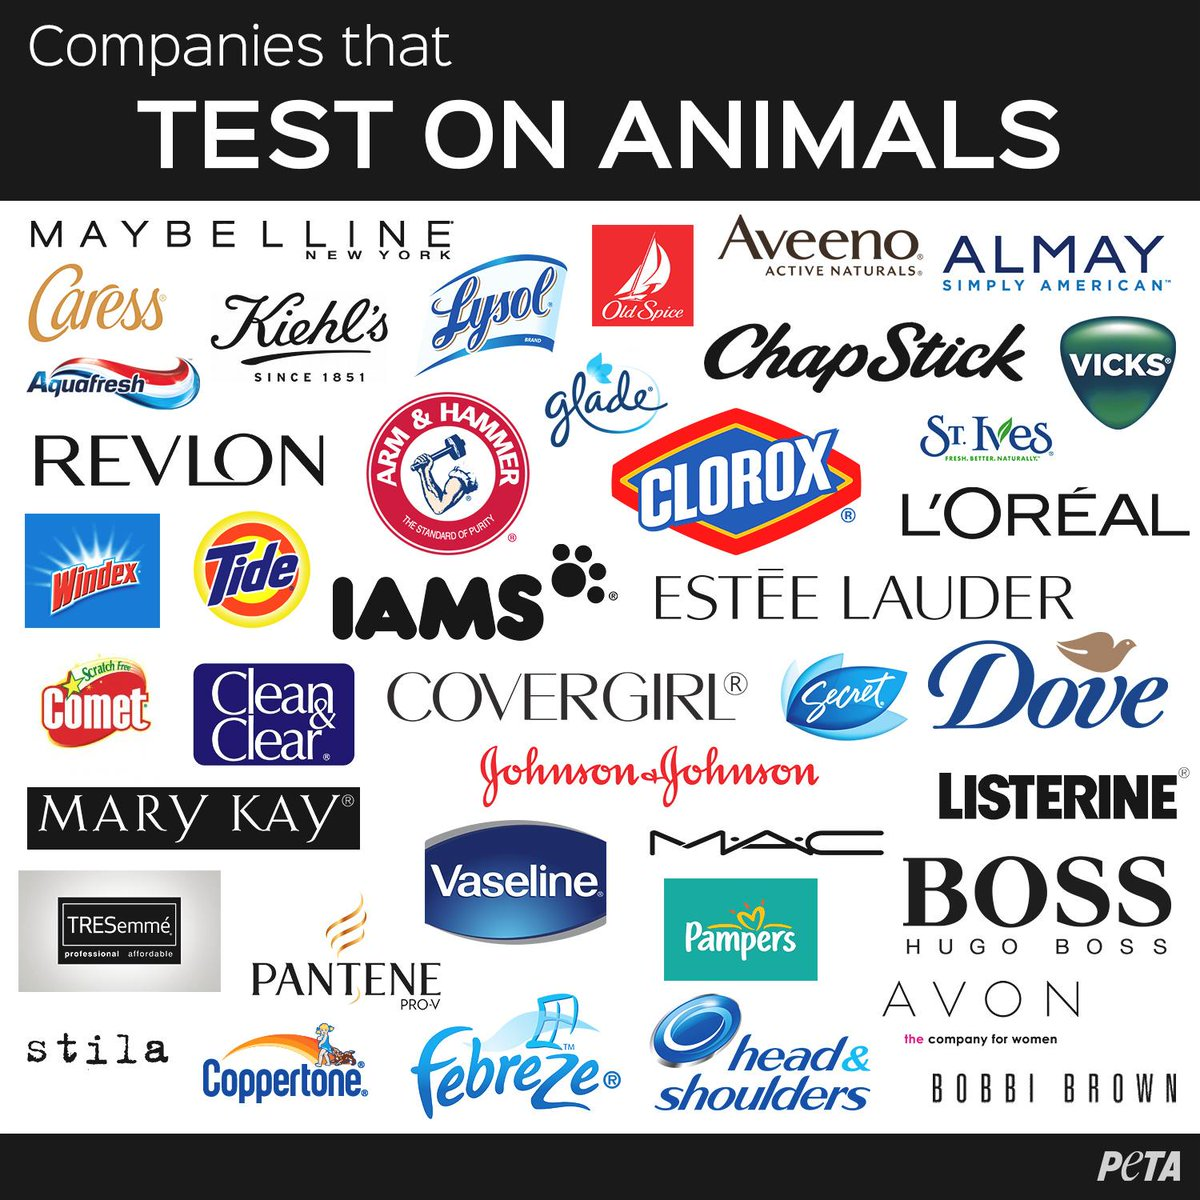 These companies STILL test on animals.